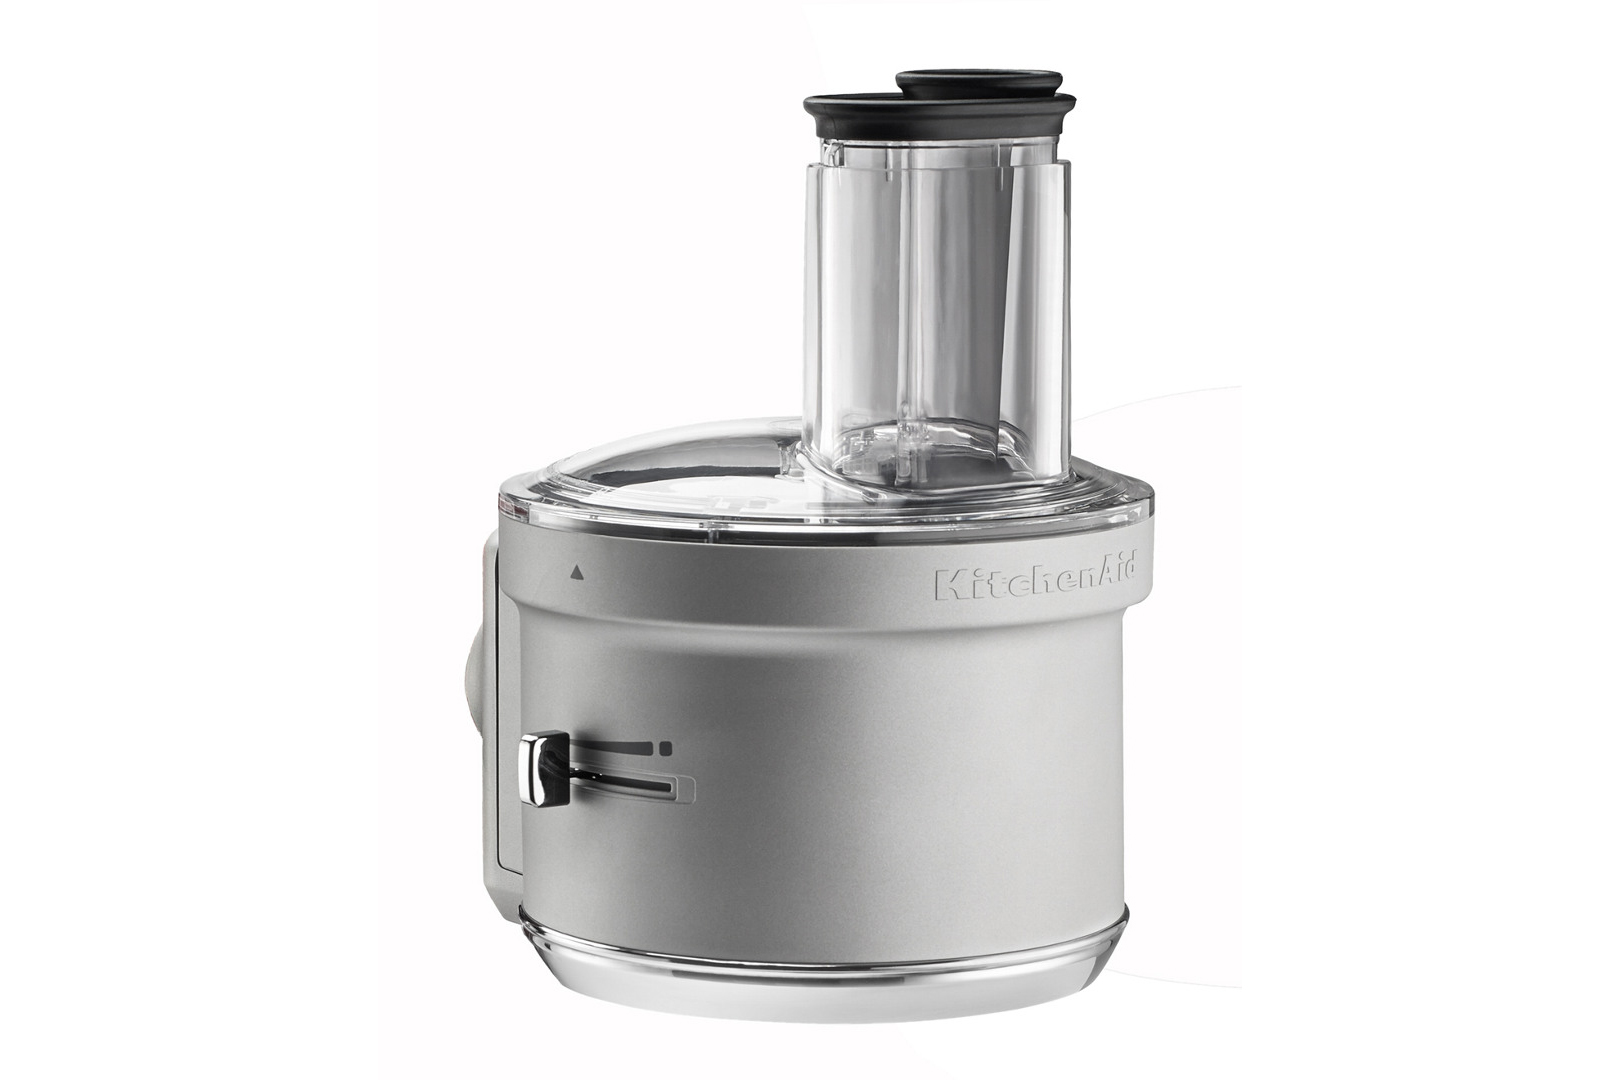 KitchenAid Food Processor Attachment for Stand Mixers